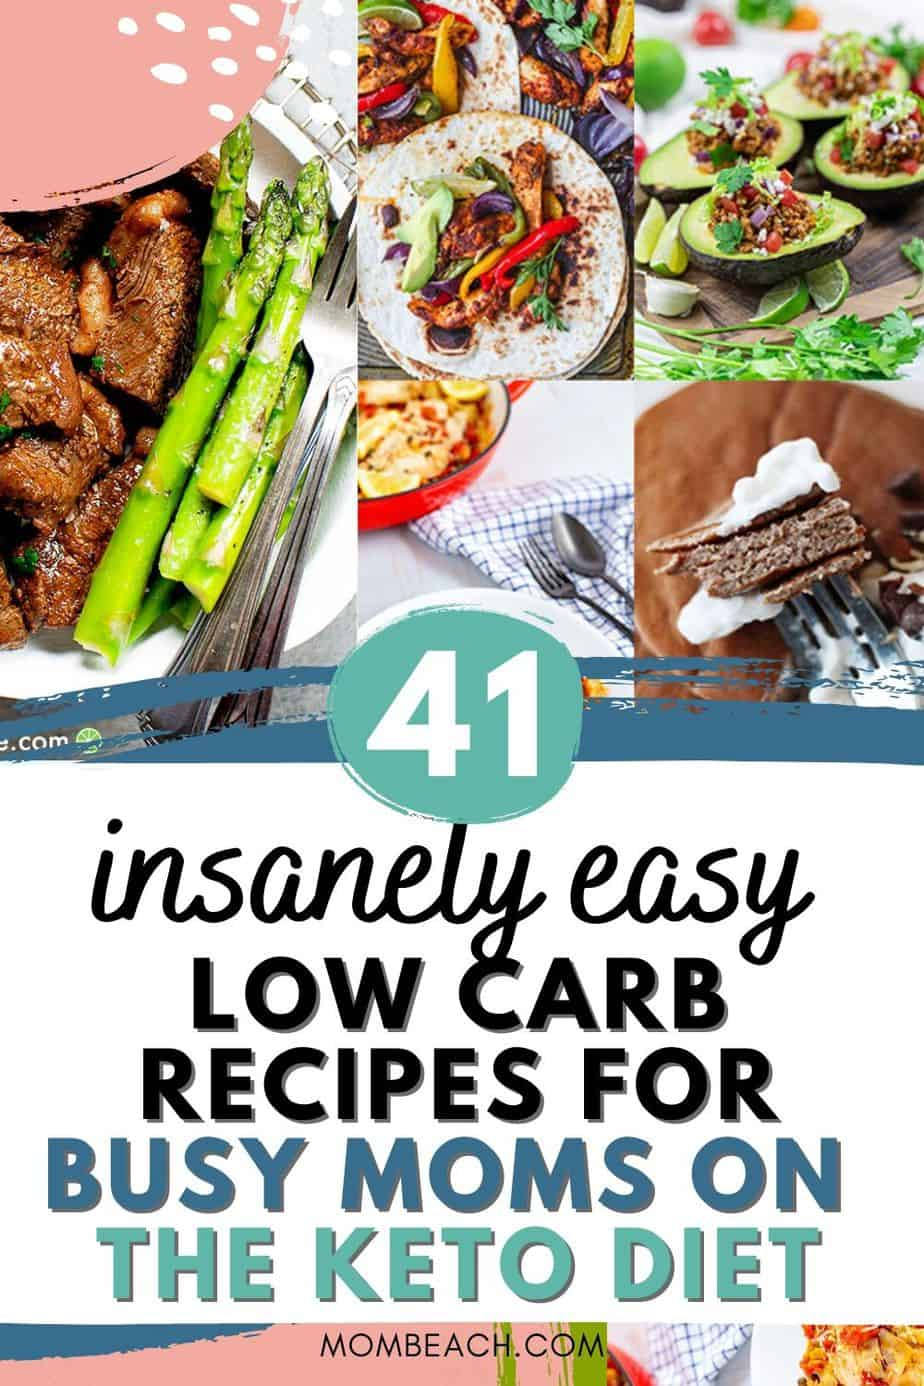 You won't believe how insanely easy these low carb recipes for dinner are! We have chicken, beef, crockpot, Instapot, and more recipes. Some include videos as well so you can see how to prepare the meals. Each of these low carb meals is perfect for a mom on the keto diet who is too busy to cook. #lowcarbrecipes #lowcarbmeals #lowcarbrecipesfordinner #easylowcarbrecipes #easylowcarbdinnerrecipes #easylowcarbmeals